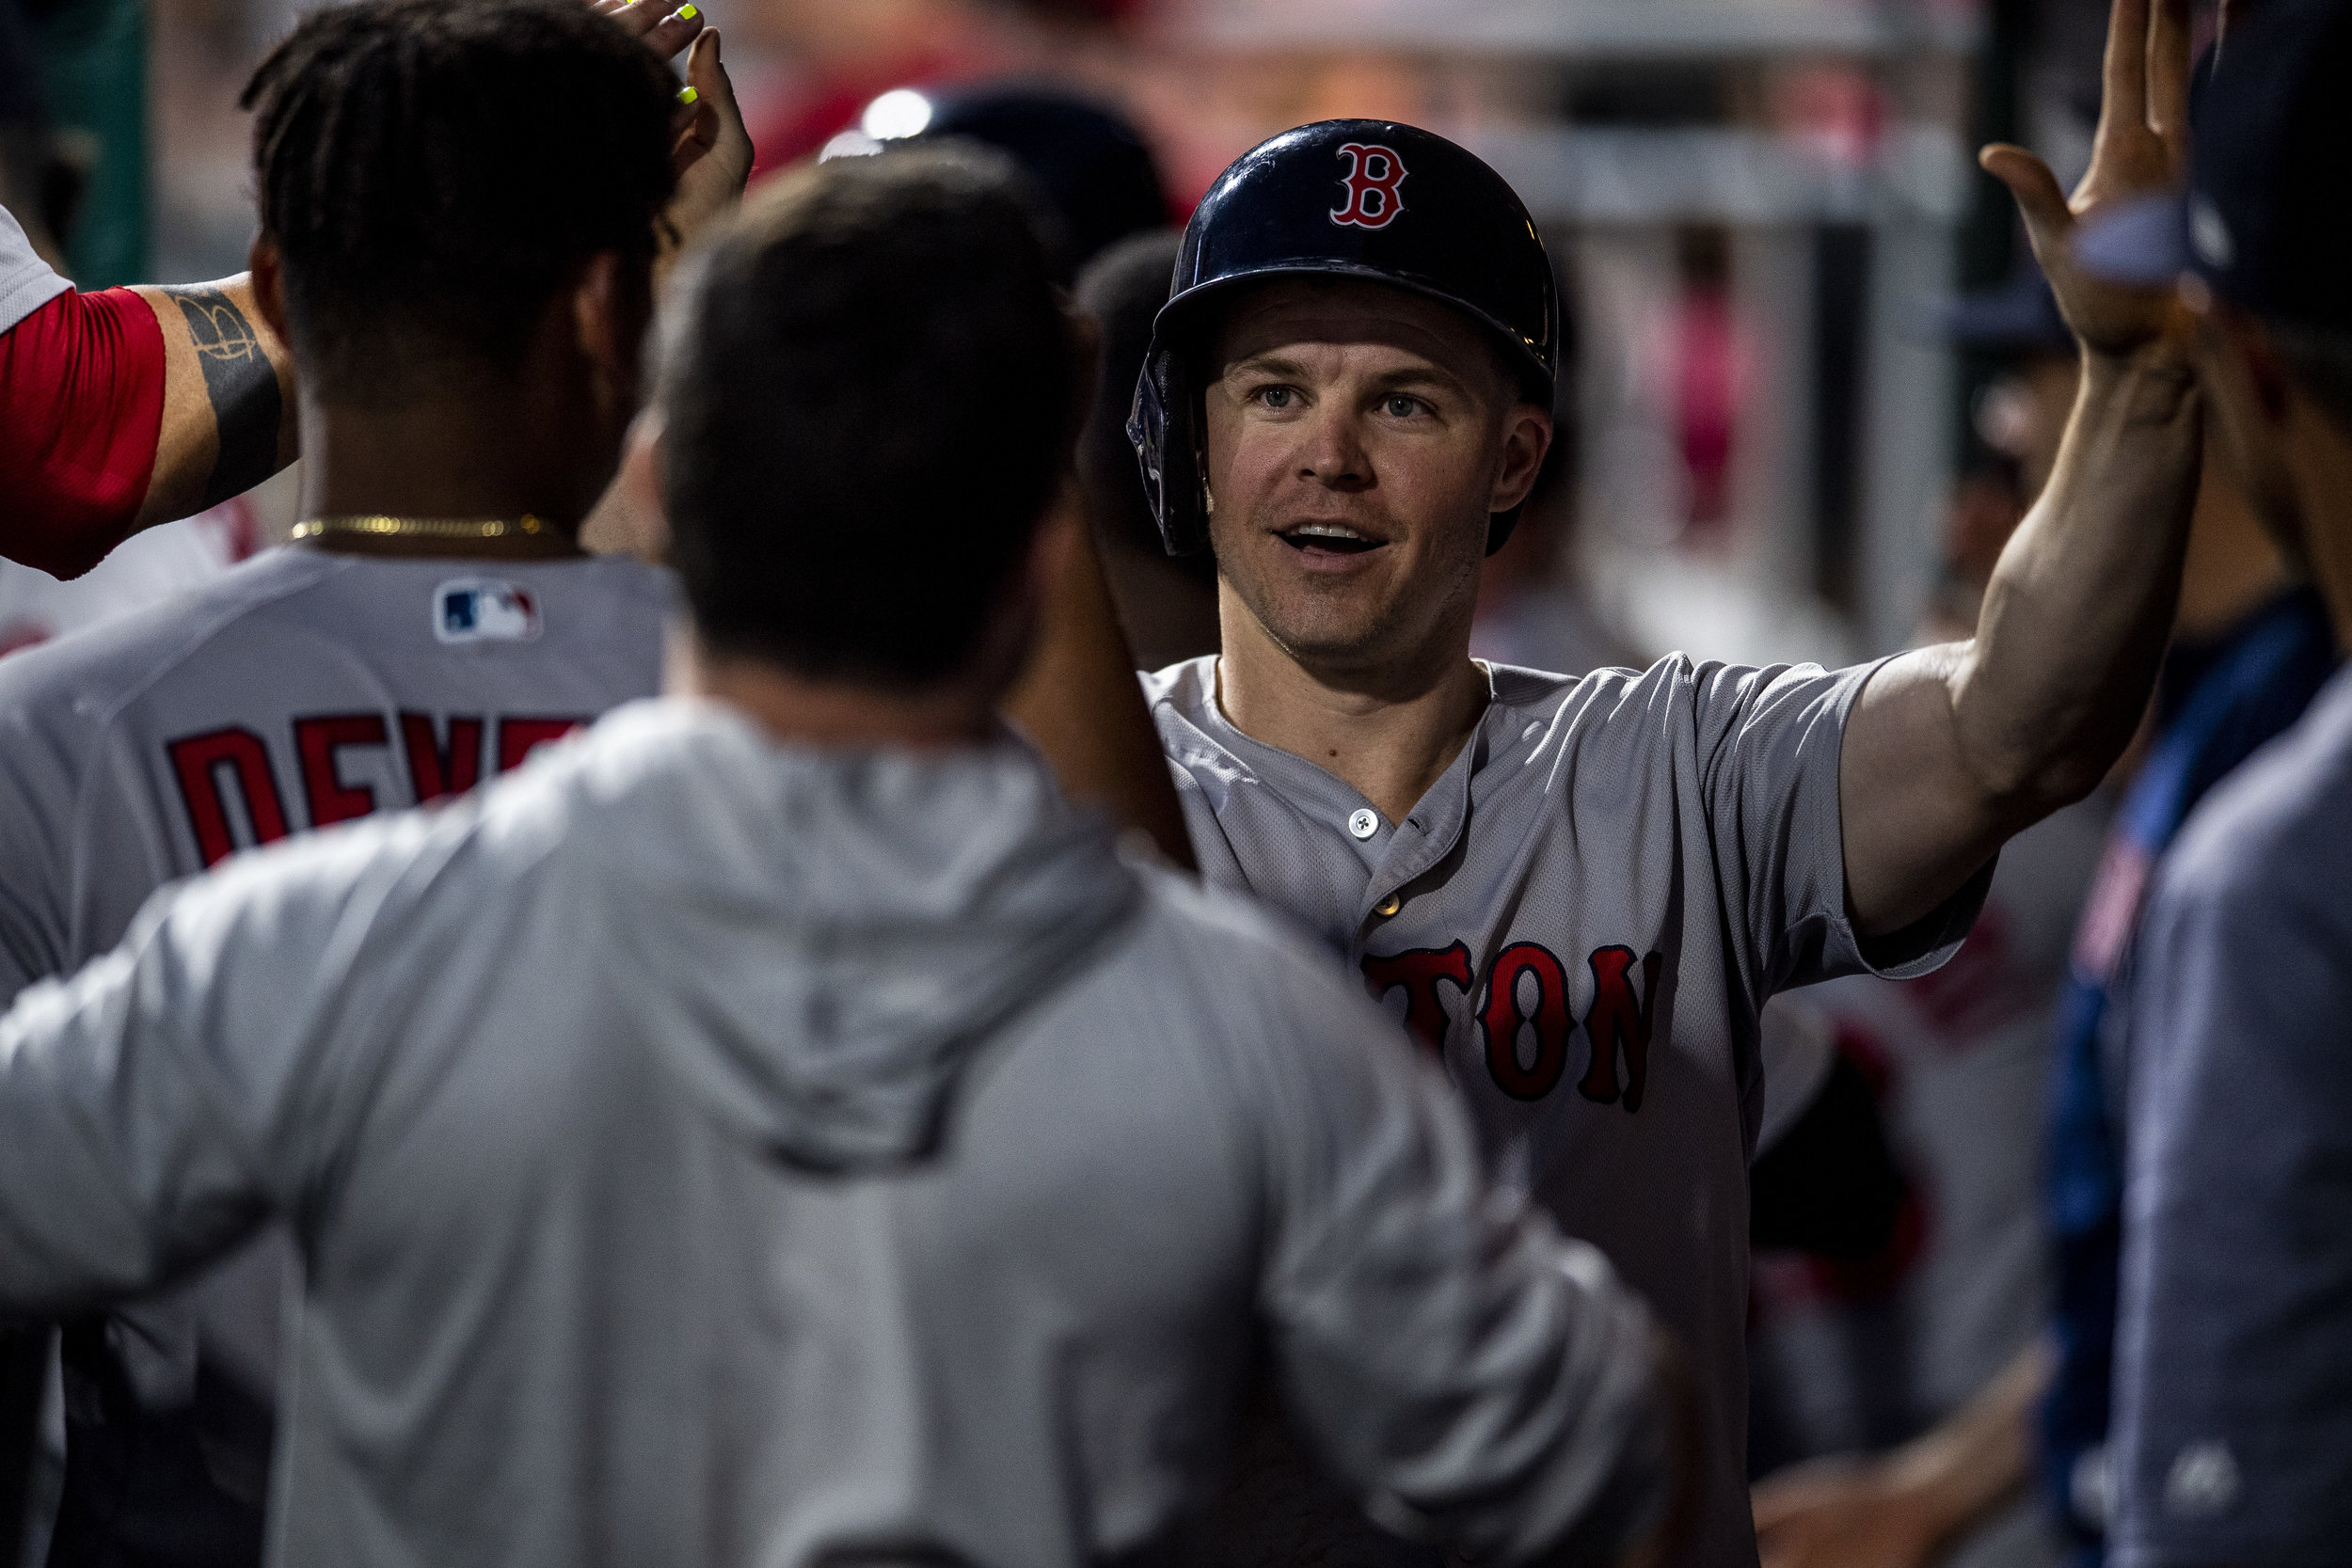 August 15, 2018, Philadelphia, PA: Boston Red Sox outfielder Brock Holt high-fives teammates in the dugout after scoring a run as the Boston Red Sox face the Philadelphia Phillies at Citizen Bank Park in Philadelphia, Pennsylvania on Wednesday, August 15, 2018. (Photo by Matthew Thomas/Boston Red Sox)